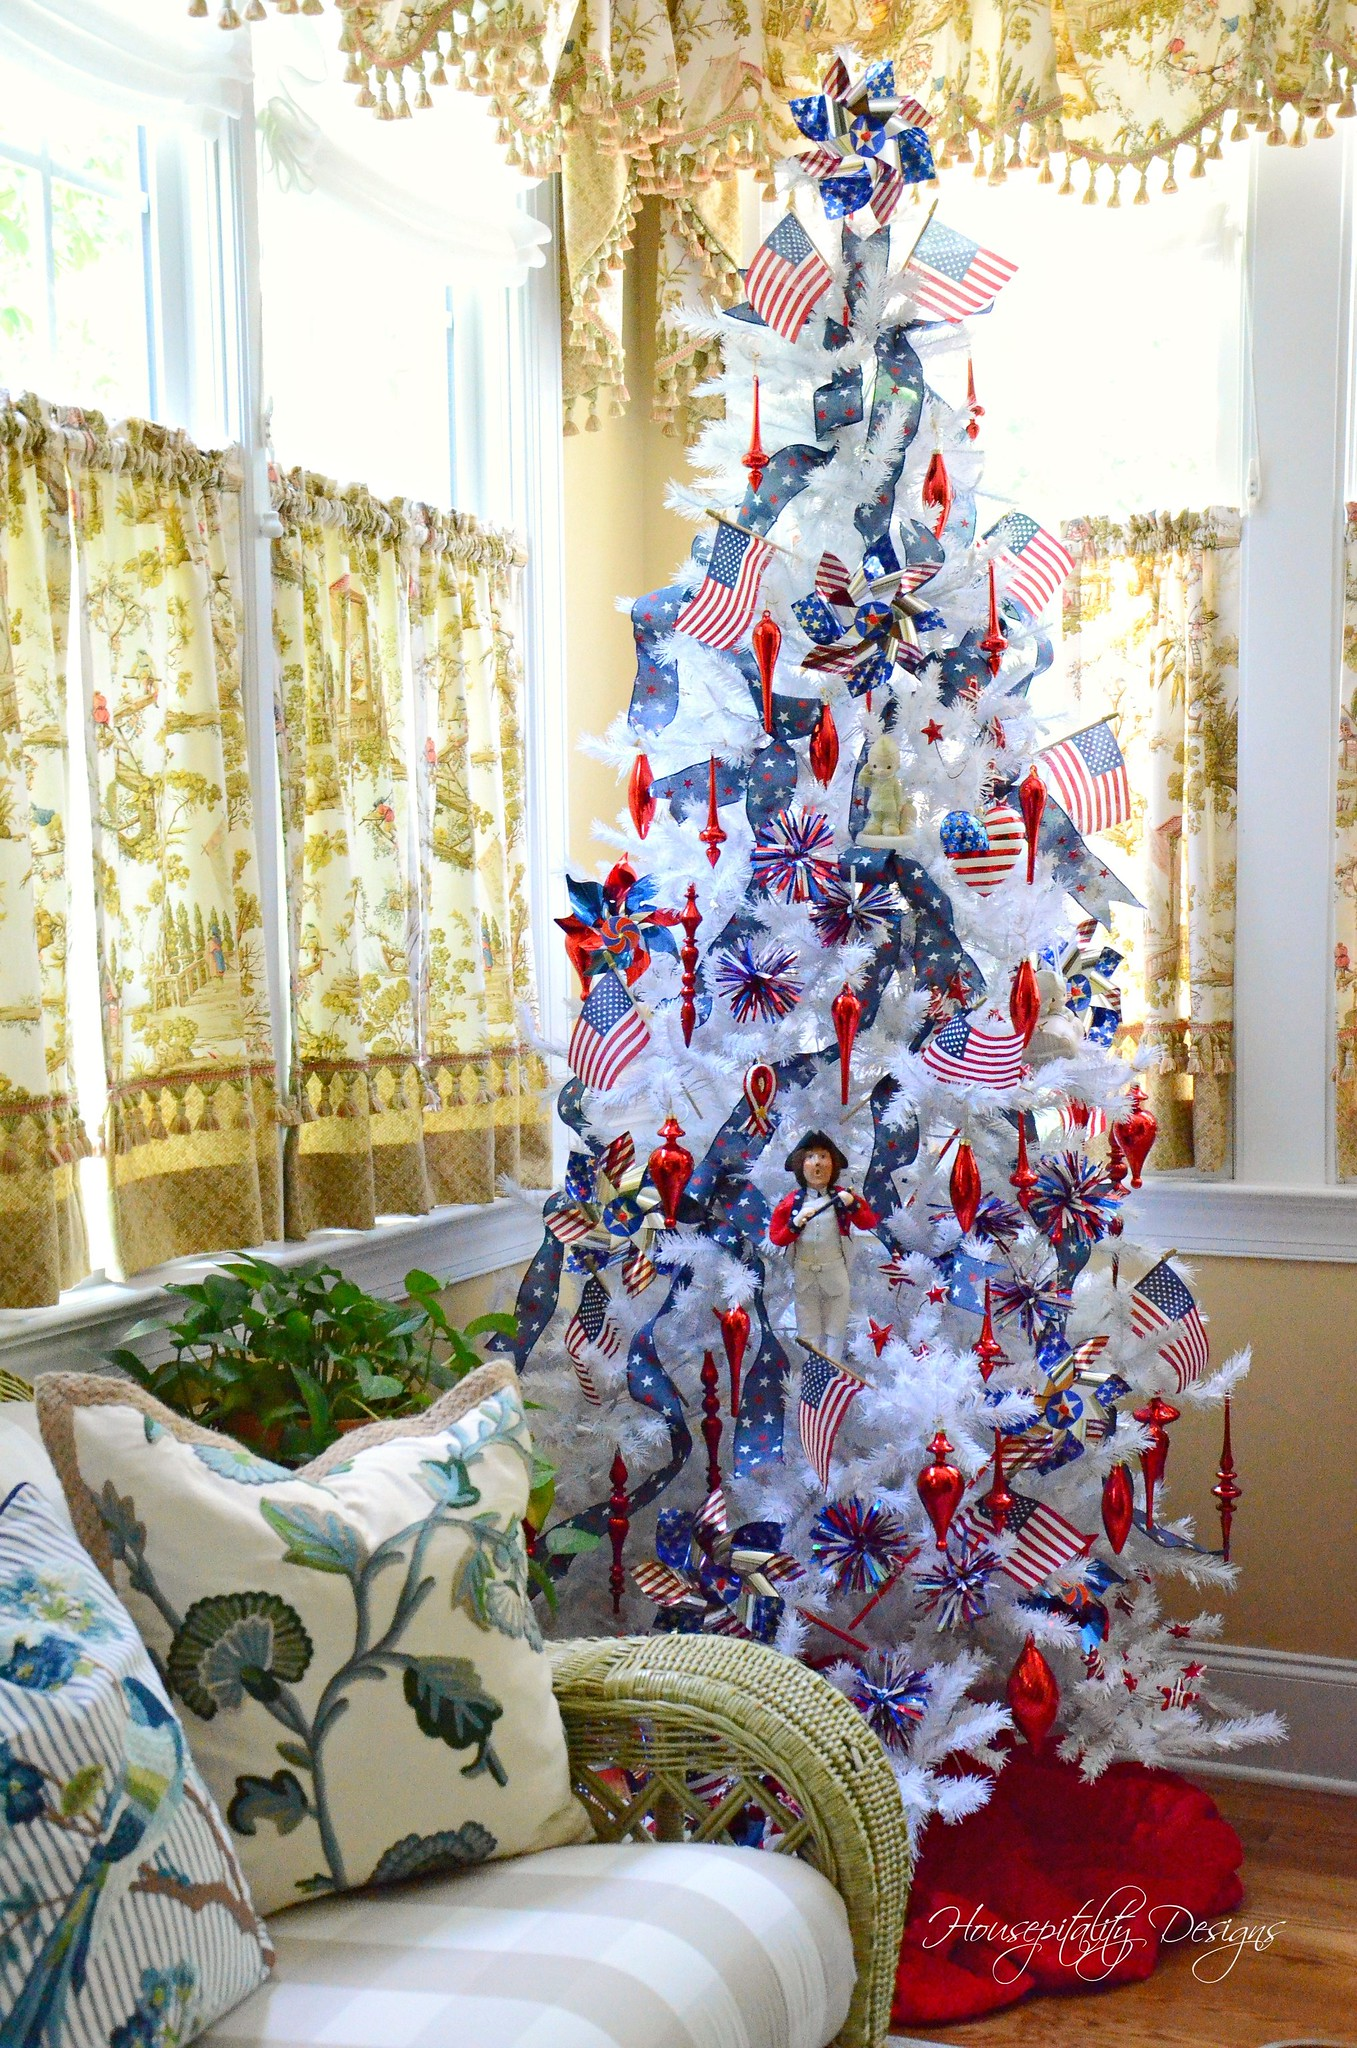 Patriotic Tree-Housepitality Designs-5